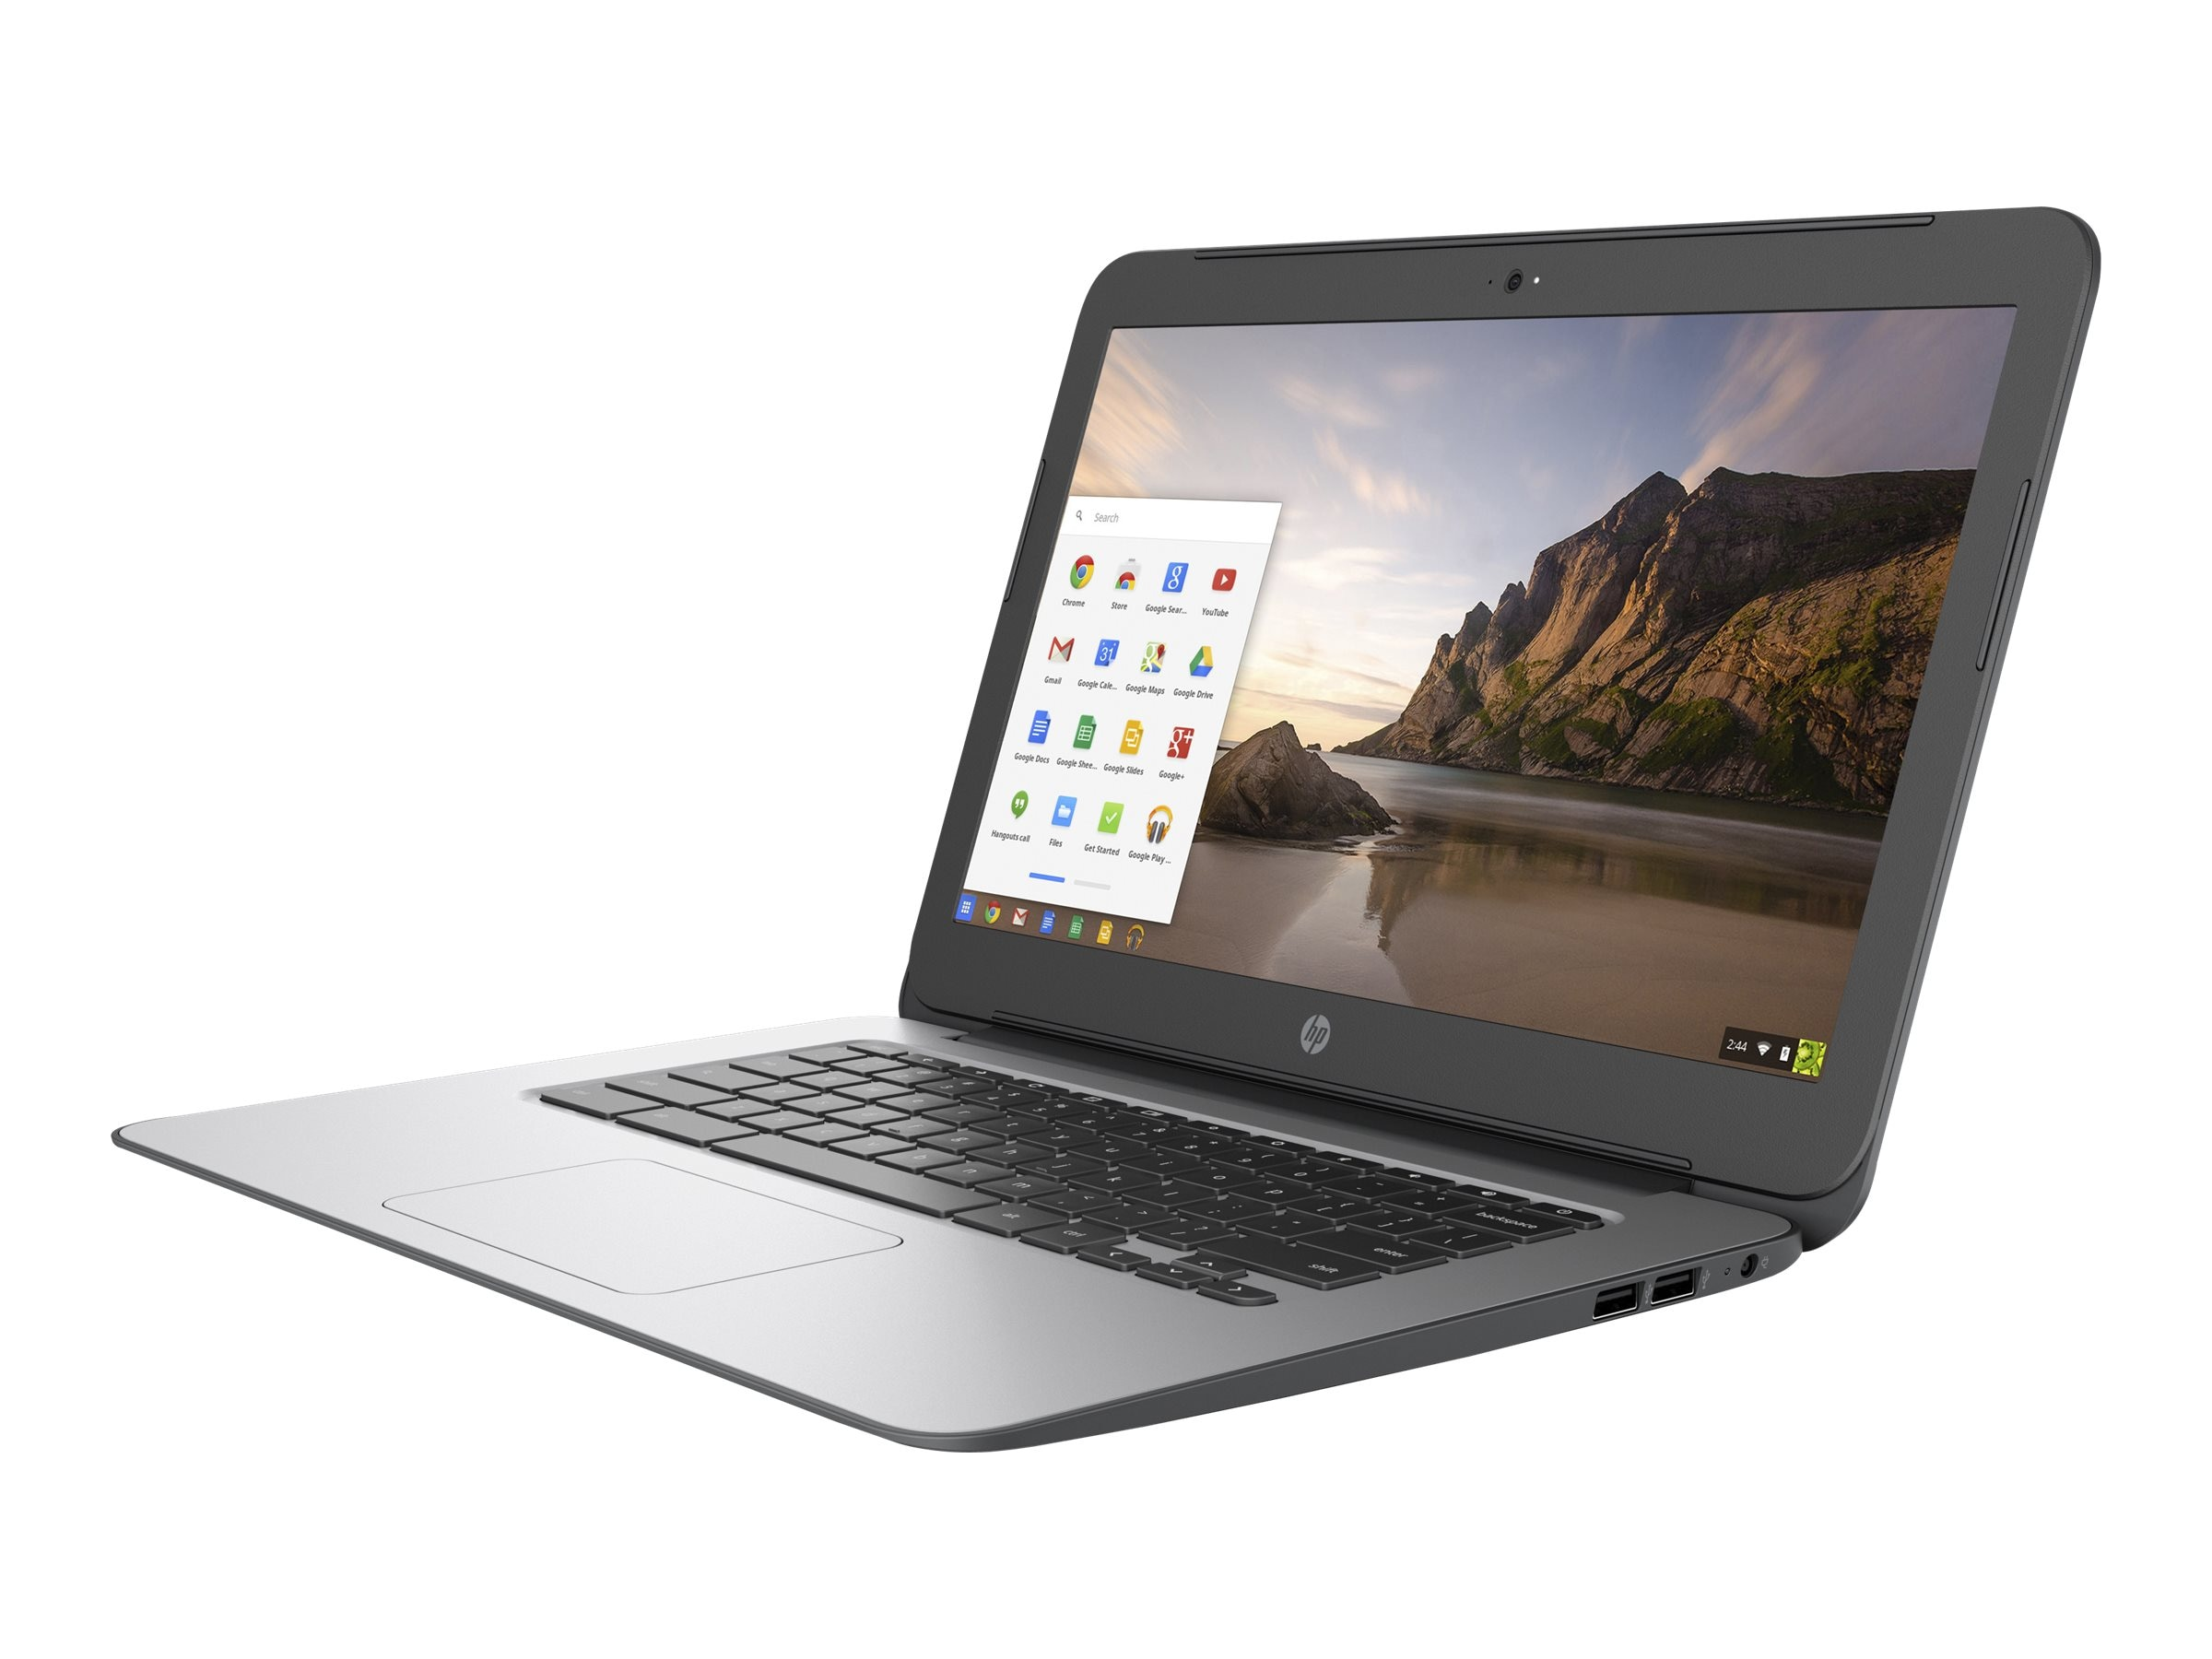 HP Chromebook 14 G4 Celeron N2840 2.16GHz 4GB 16GB abgn BT WC 3C 14 HD Chrome OS, T4M32UT#ABA, 30630177, Notebooks